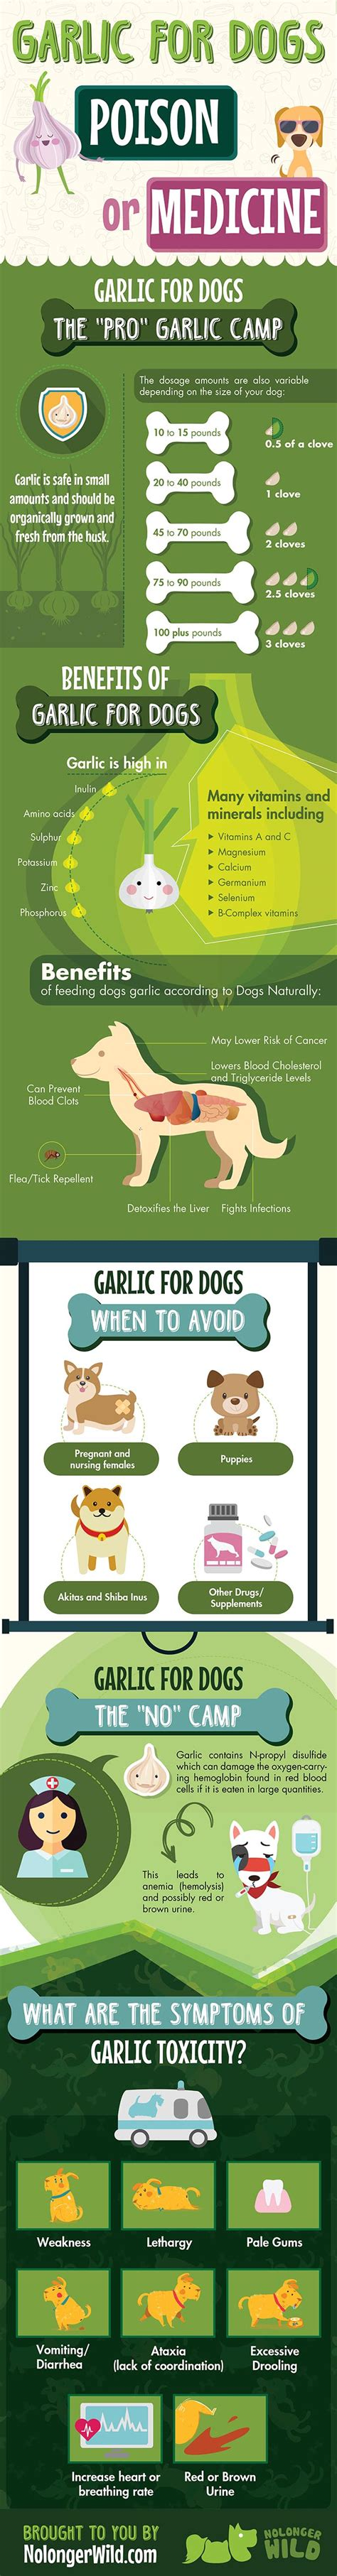 garlic for dogs garlic for dogs poison or medicine infographic